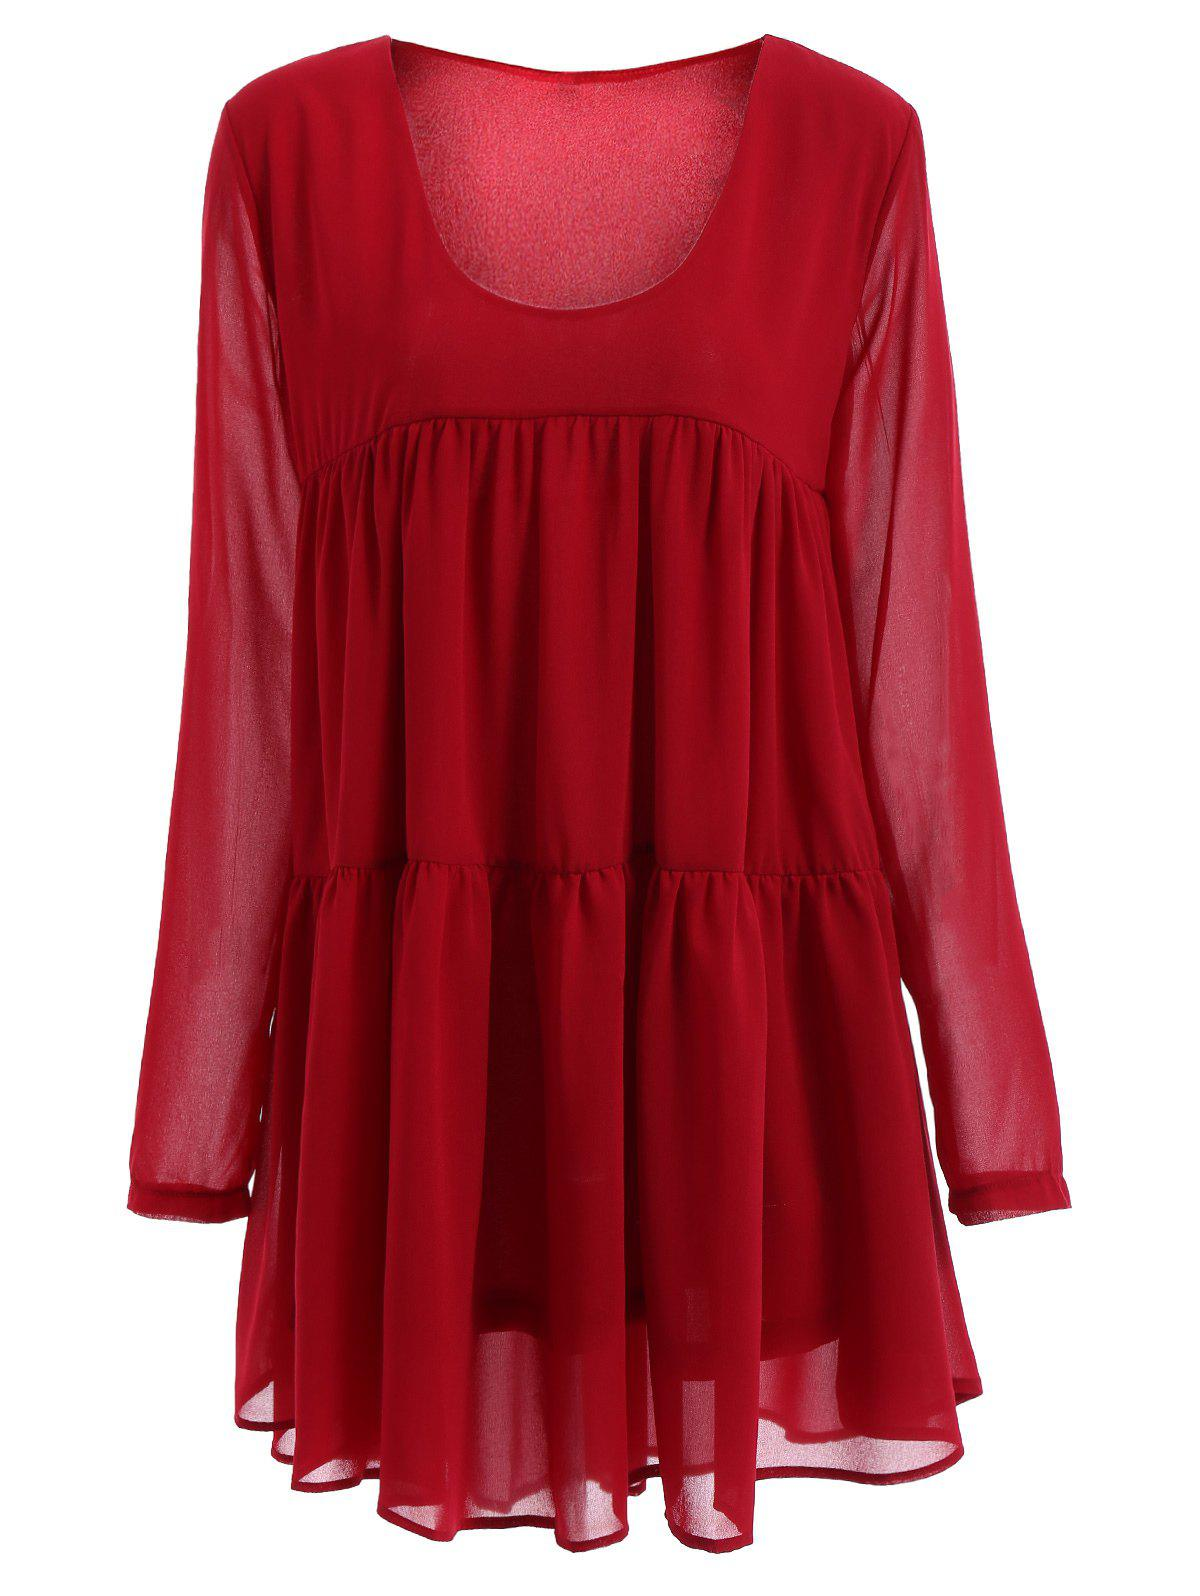 Women's Scoop Neck Long Sleeve Red Pleated Dress - RED M